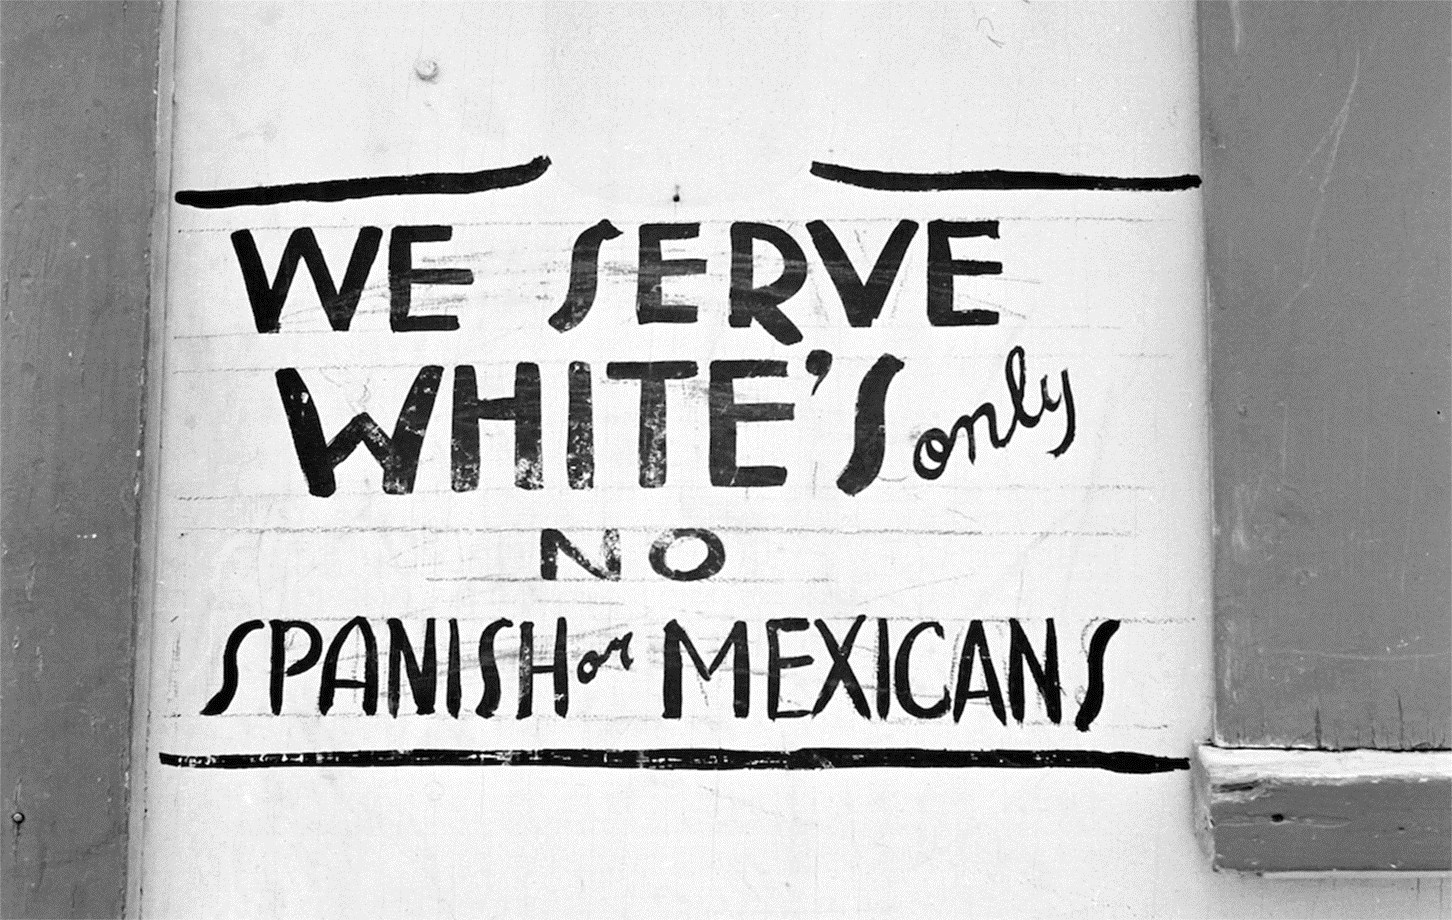 We serve white's only. No Spanish or Mexicans.